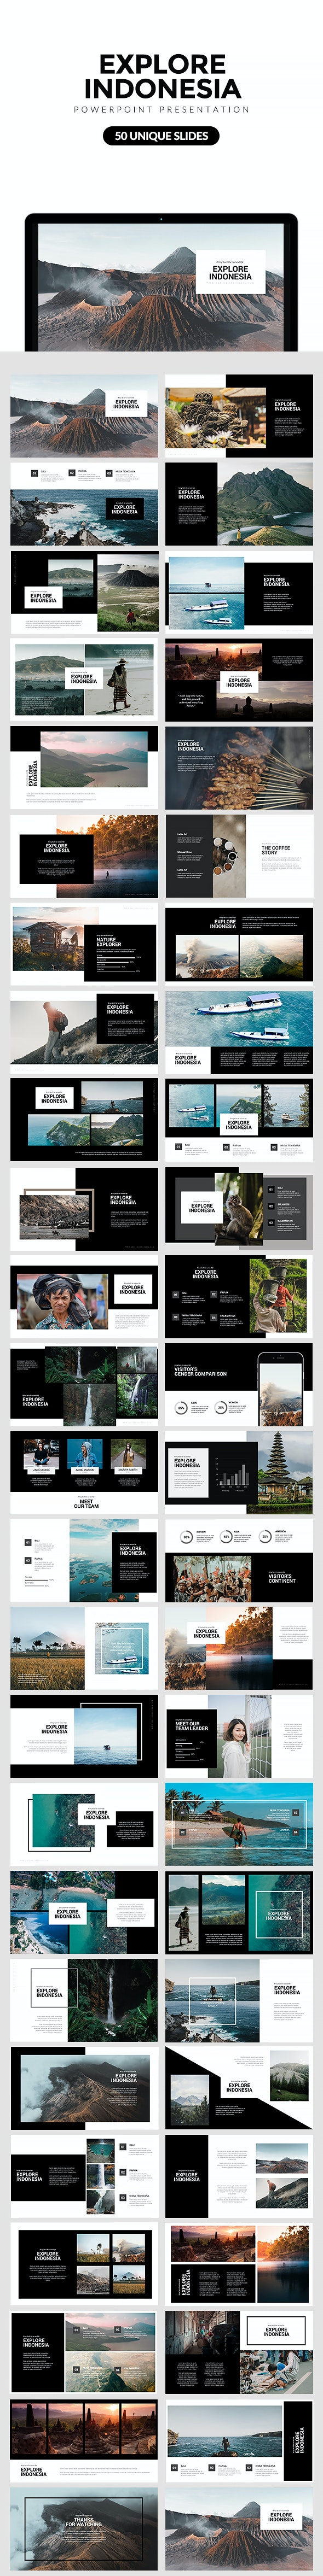 Explore Indonesia Powerpoint Template - Nature PowerPoint Templates